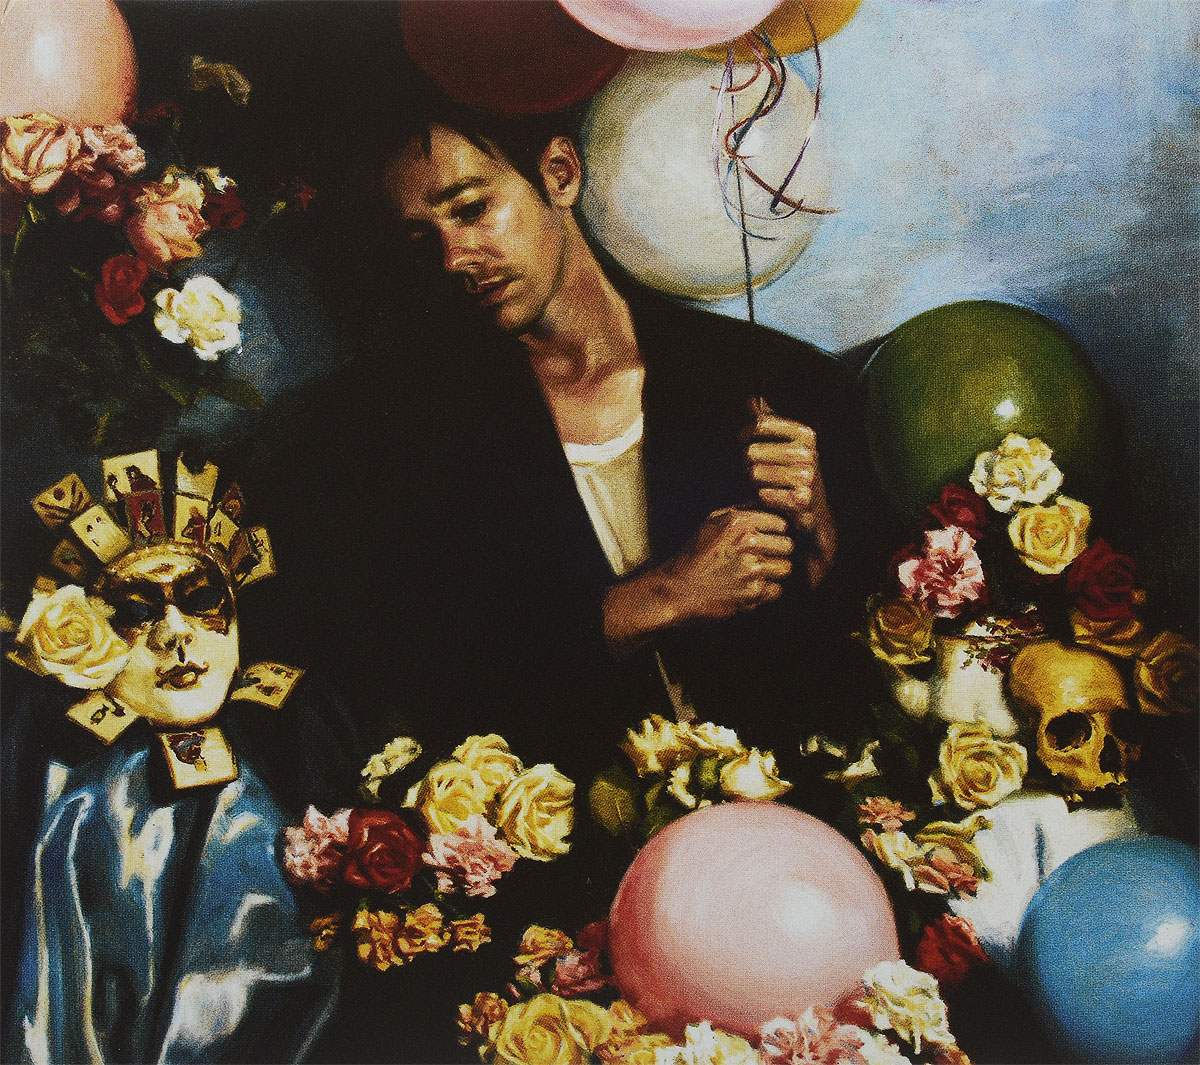 Nate Ruess. Grand Romantic (9990)